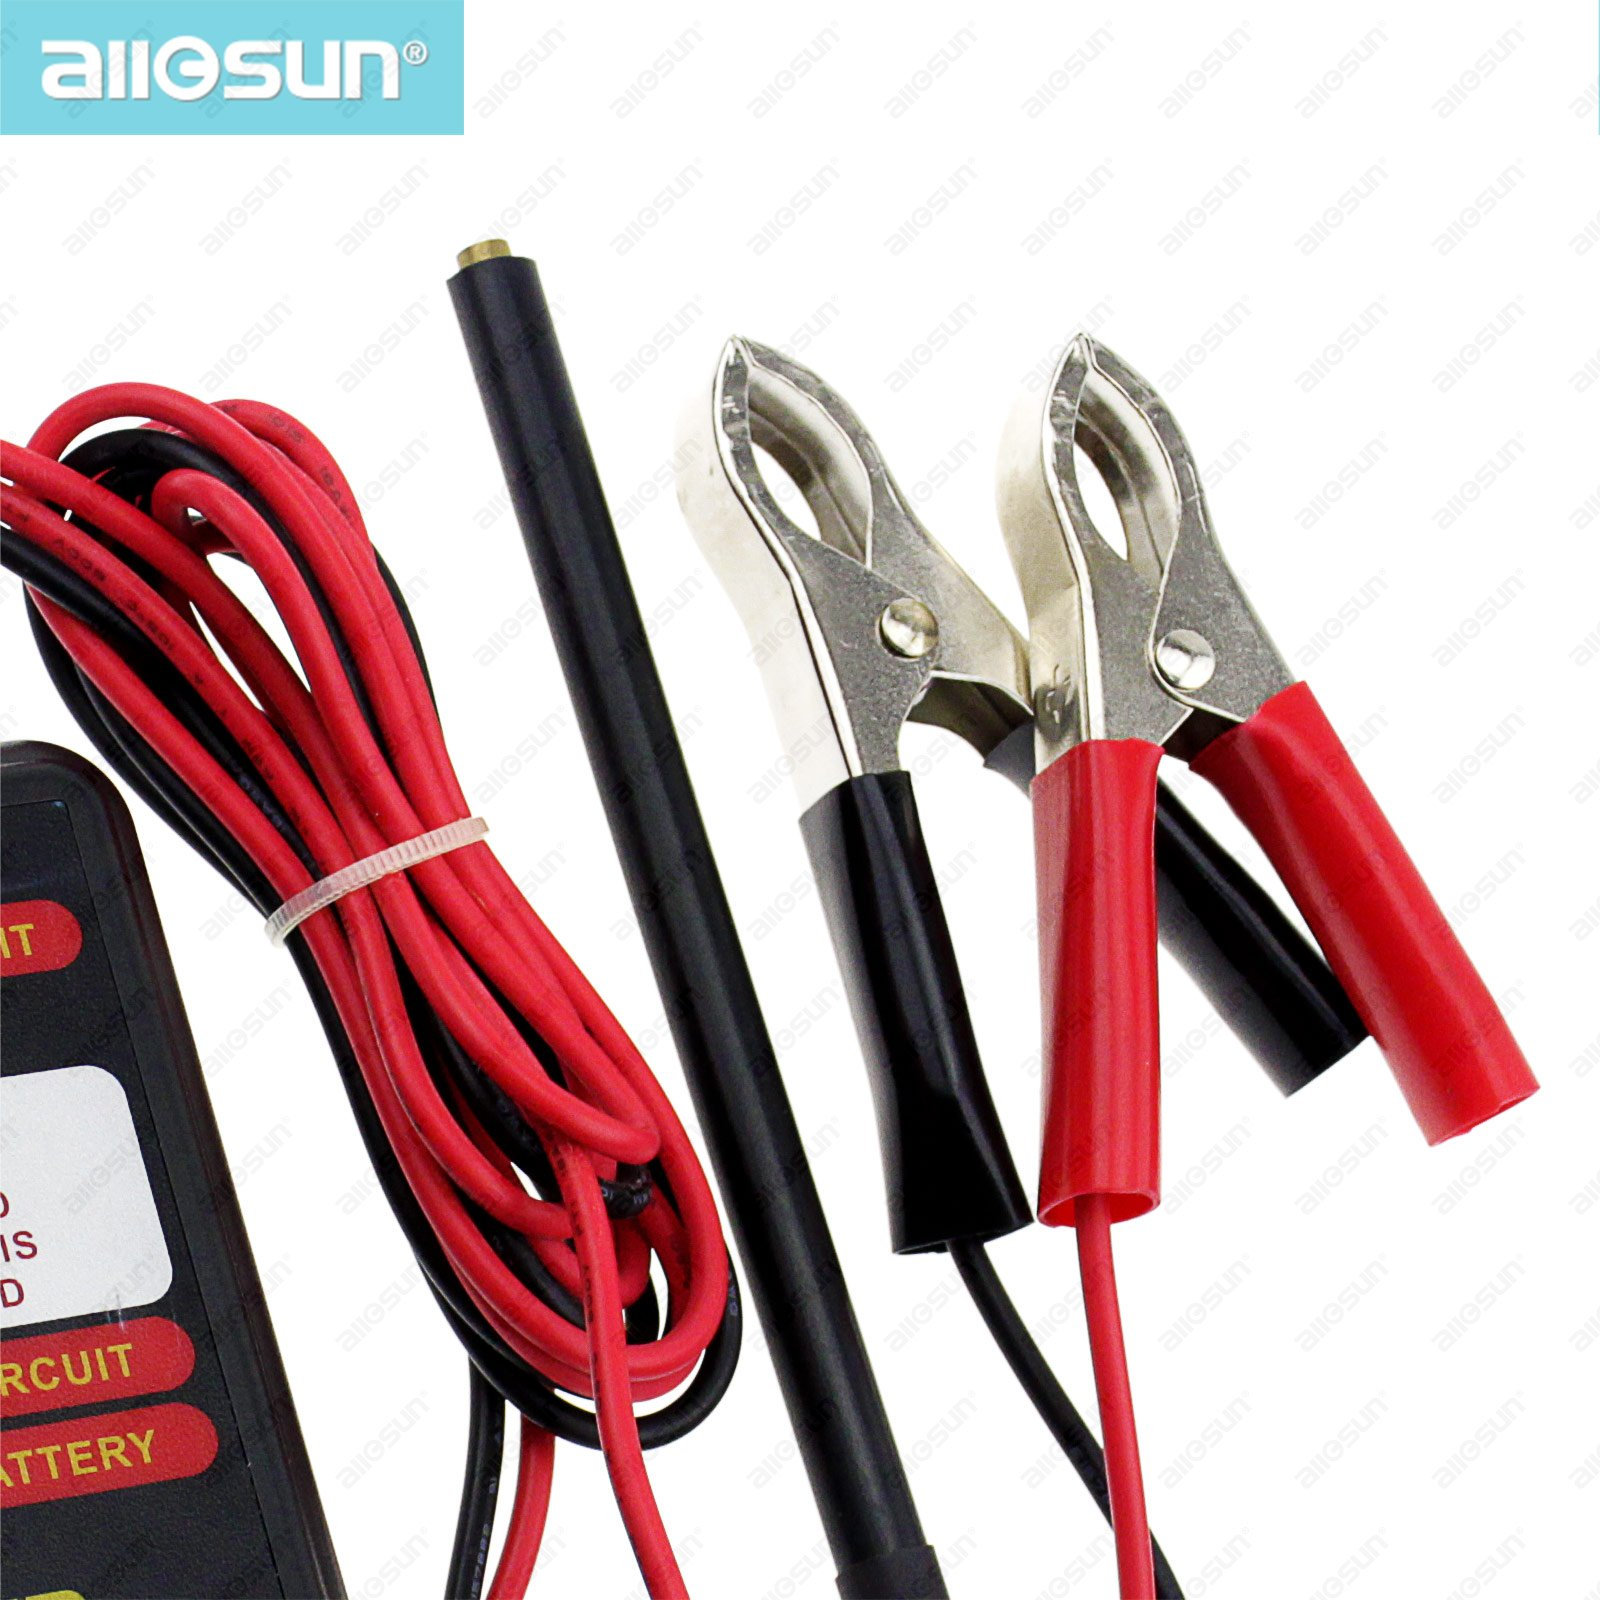 All Sun Em271 Glow Plug Analyser Measurement Analysis Instrument Current Clamp Circuit Analyzers Automotive Electrical Tester In Gas From Tools On